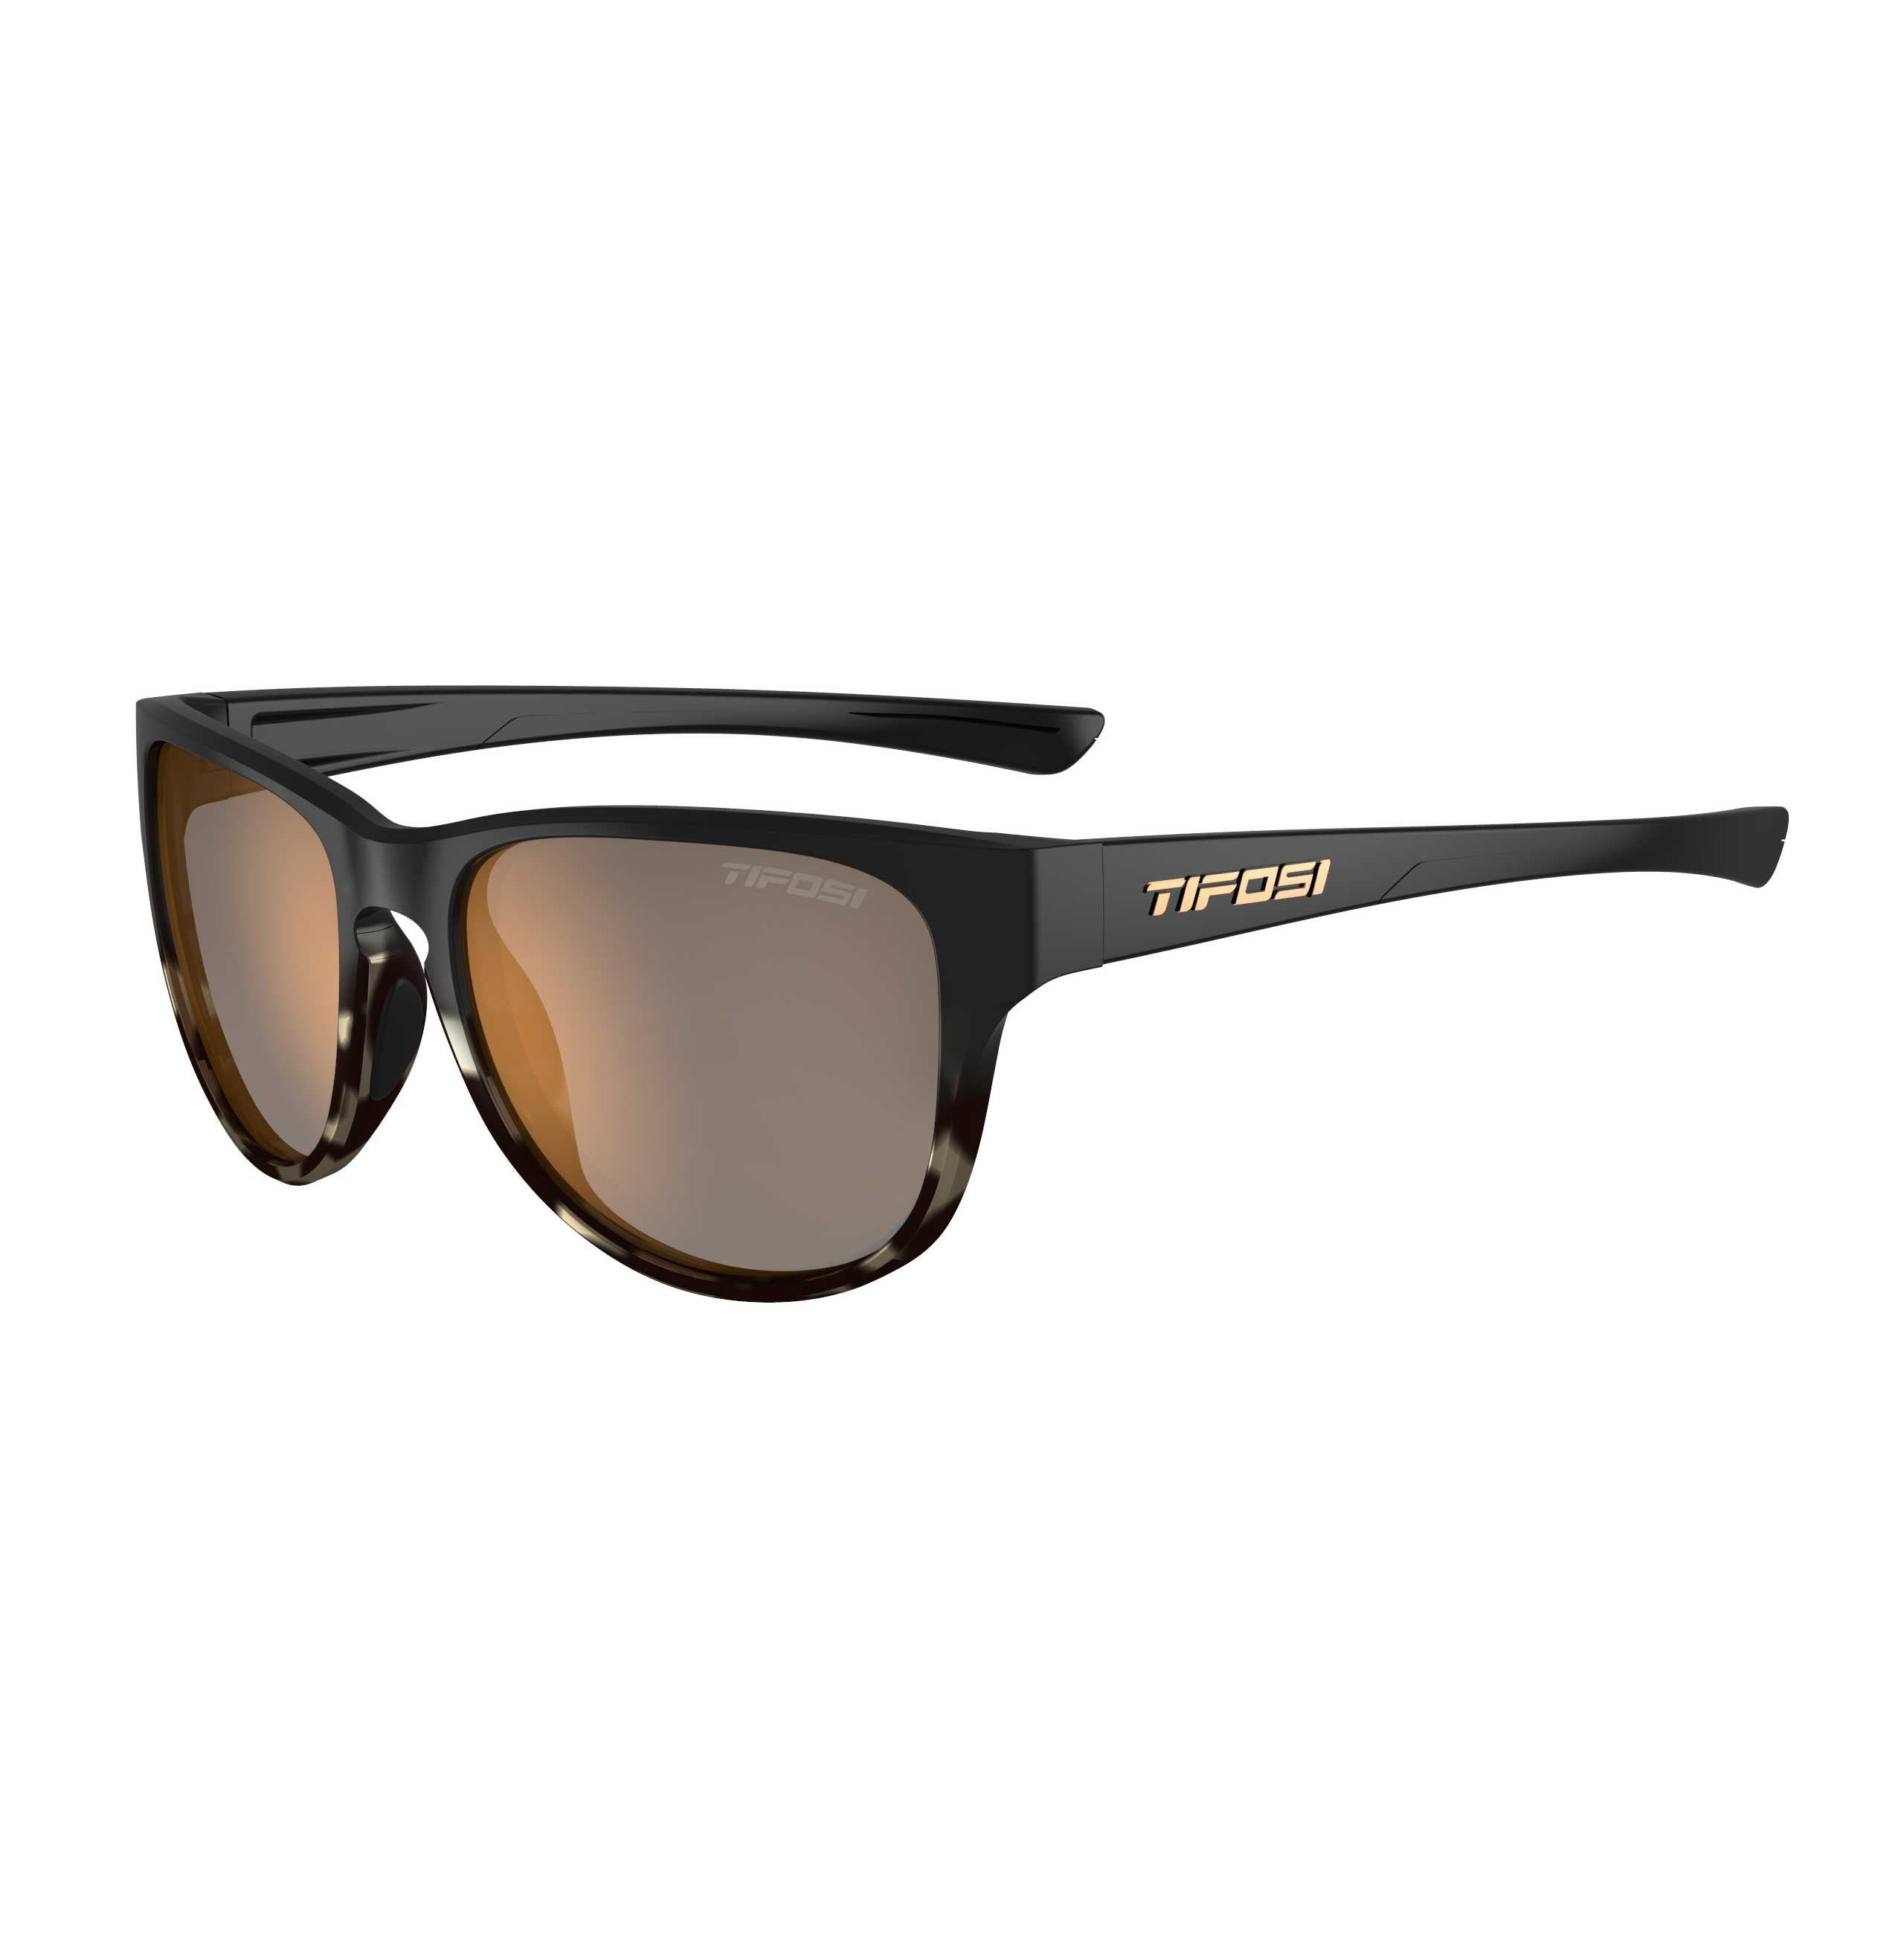 Tifosi Smoove Sunglassess